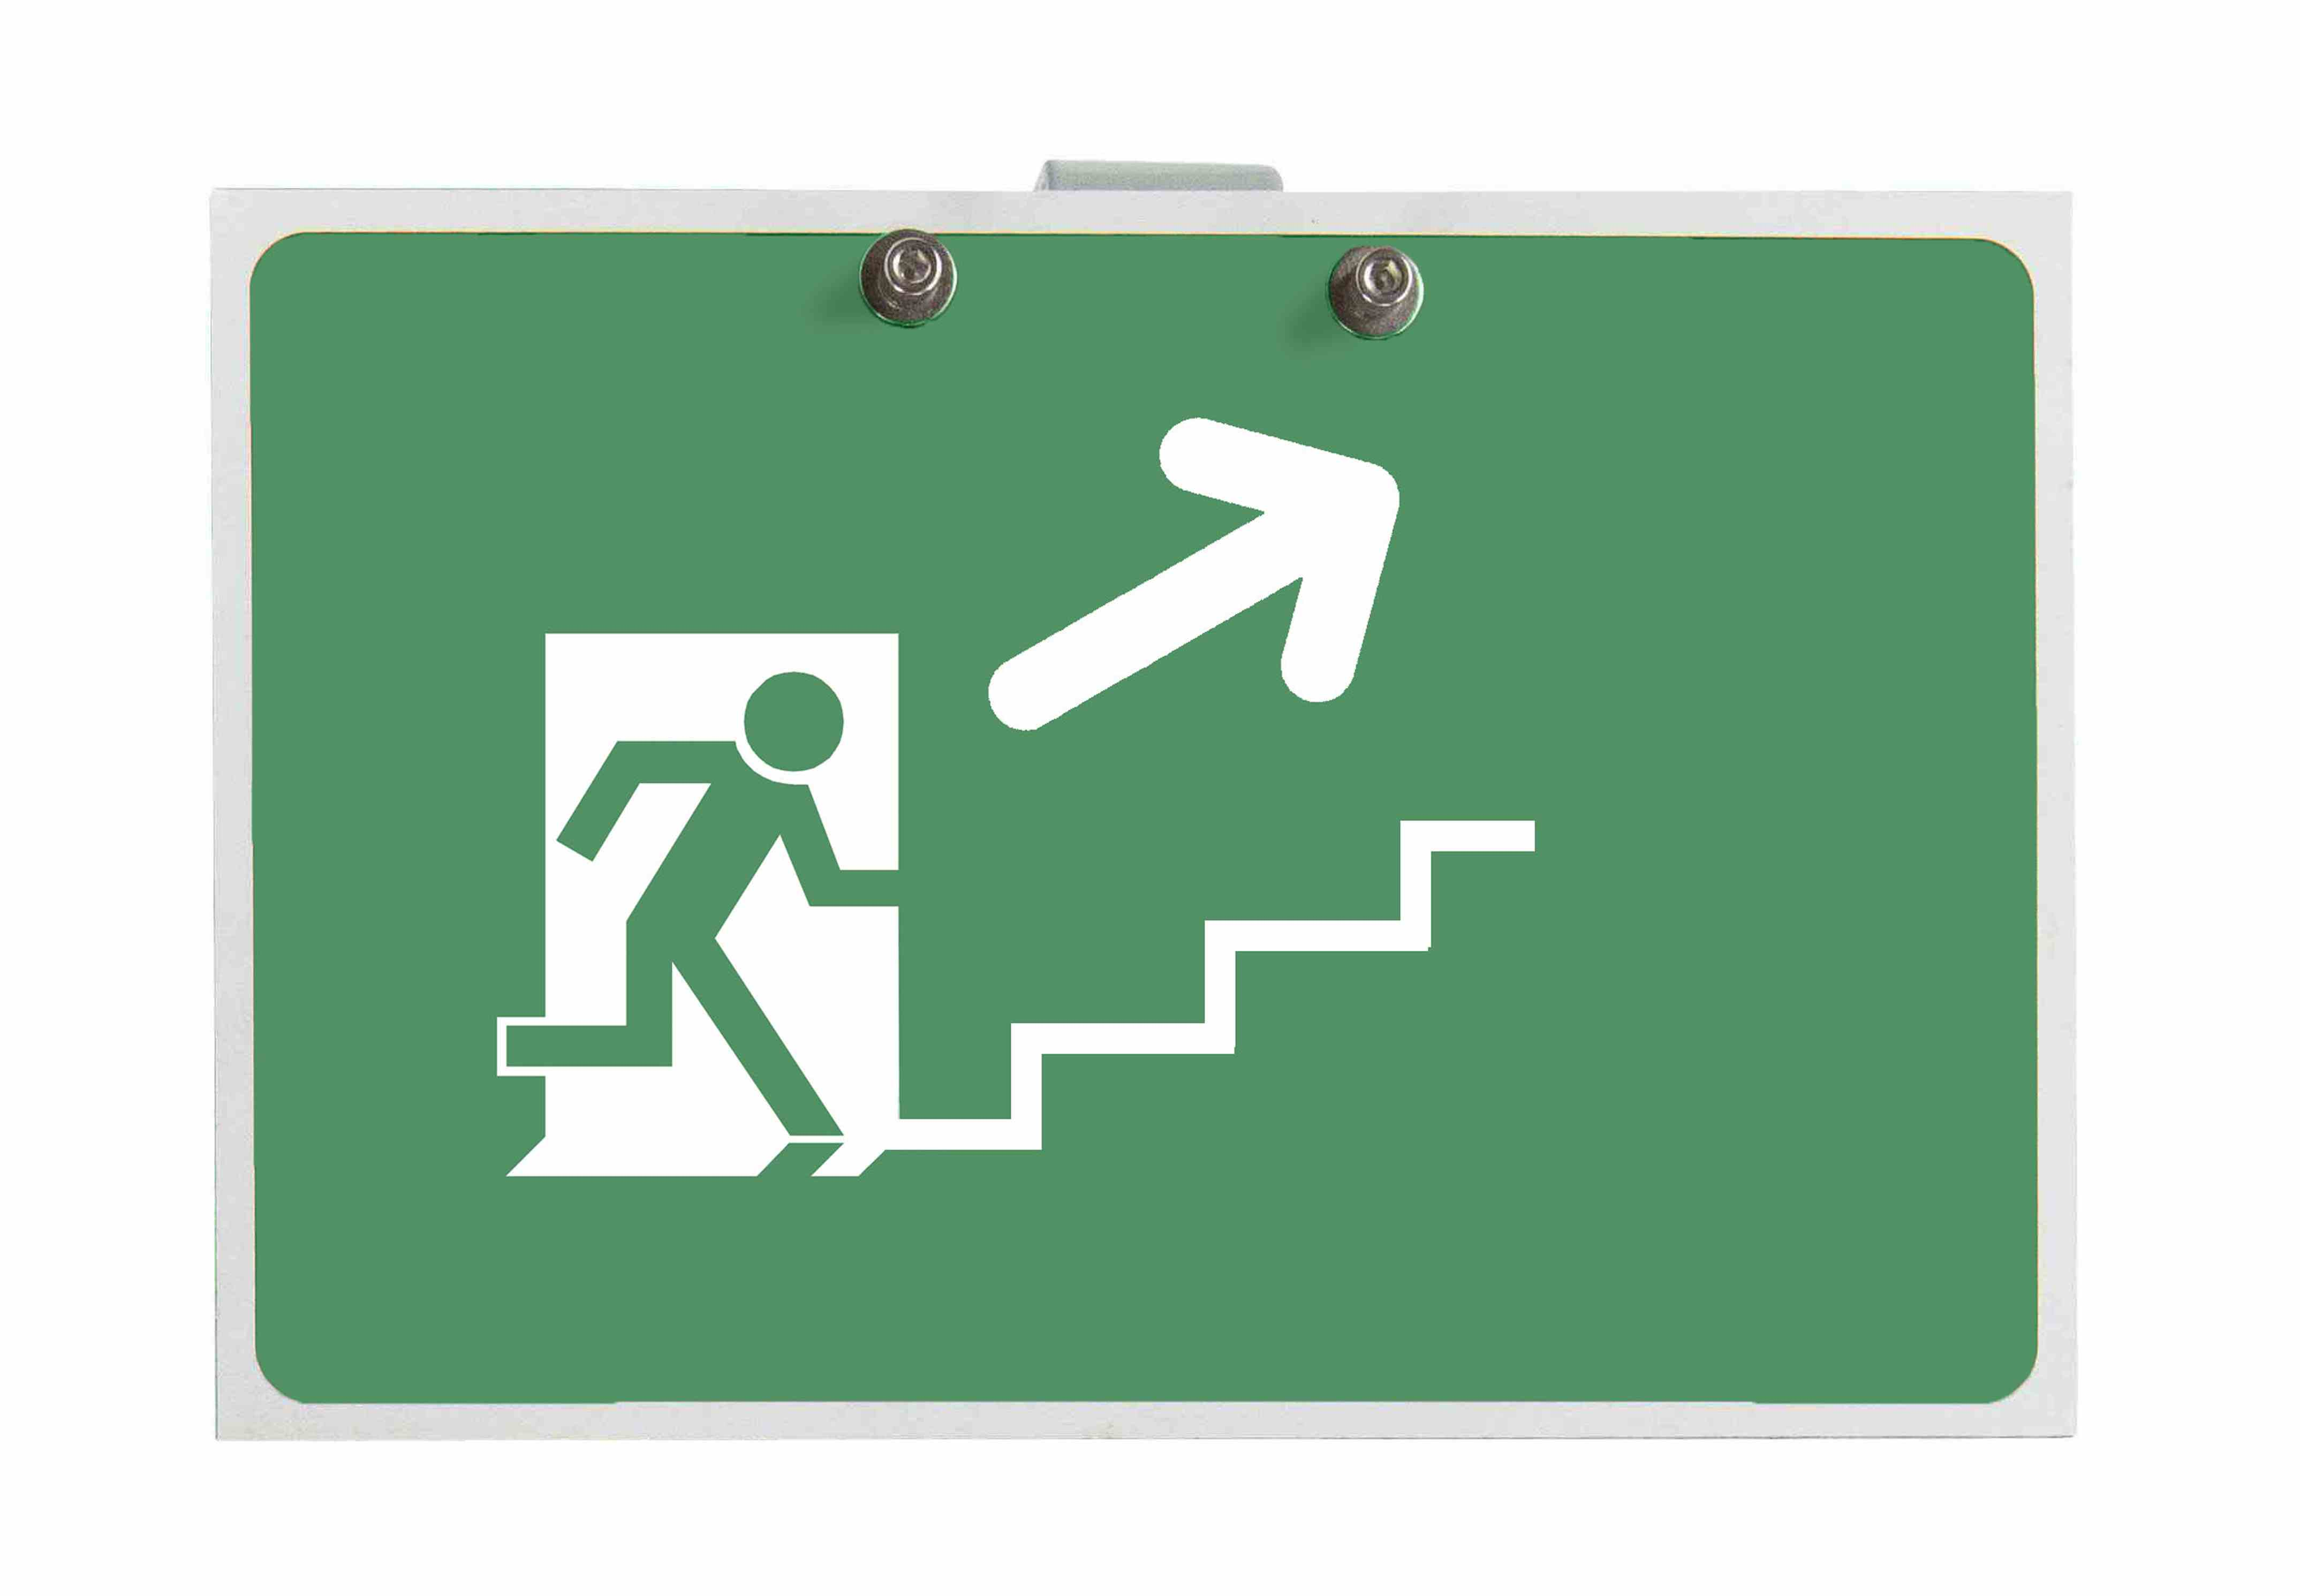 Replacement Exit Sign for ATEX-EXP-EMG-EXT-LE6-1L-V2-50HZ-SP0115 Emergency Staircase Exit Signs